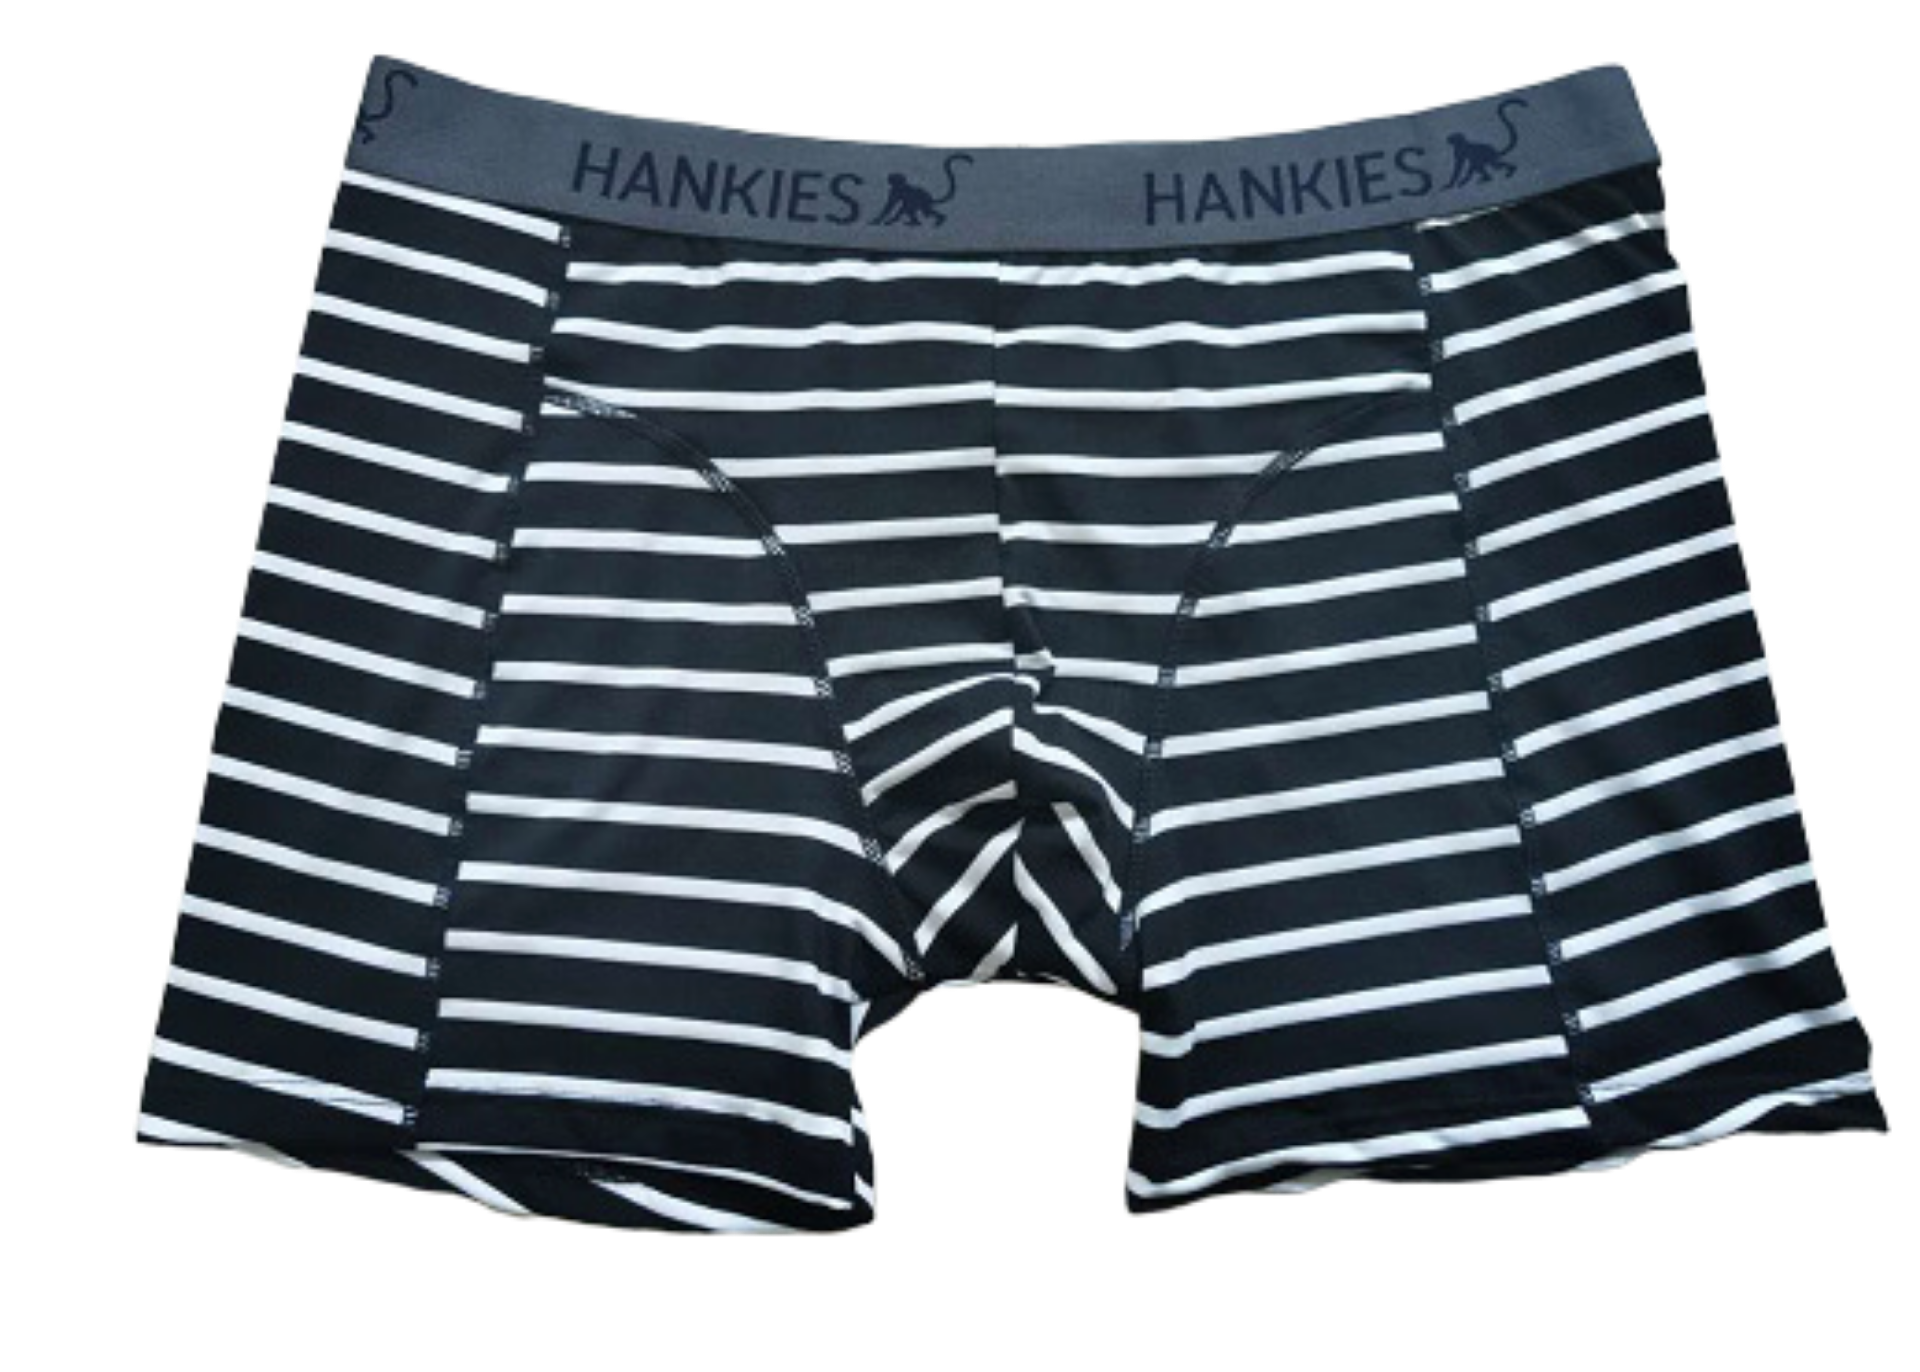 Hankies Product Only Black And White